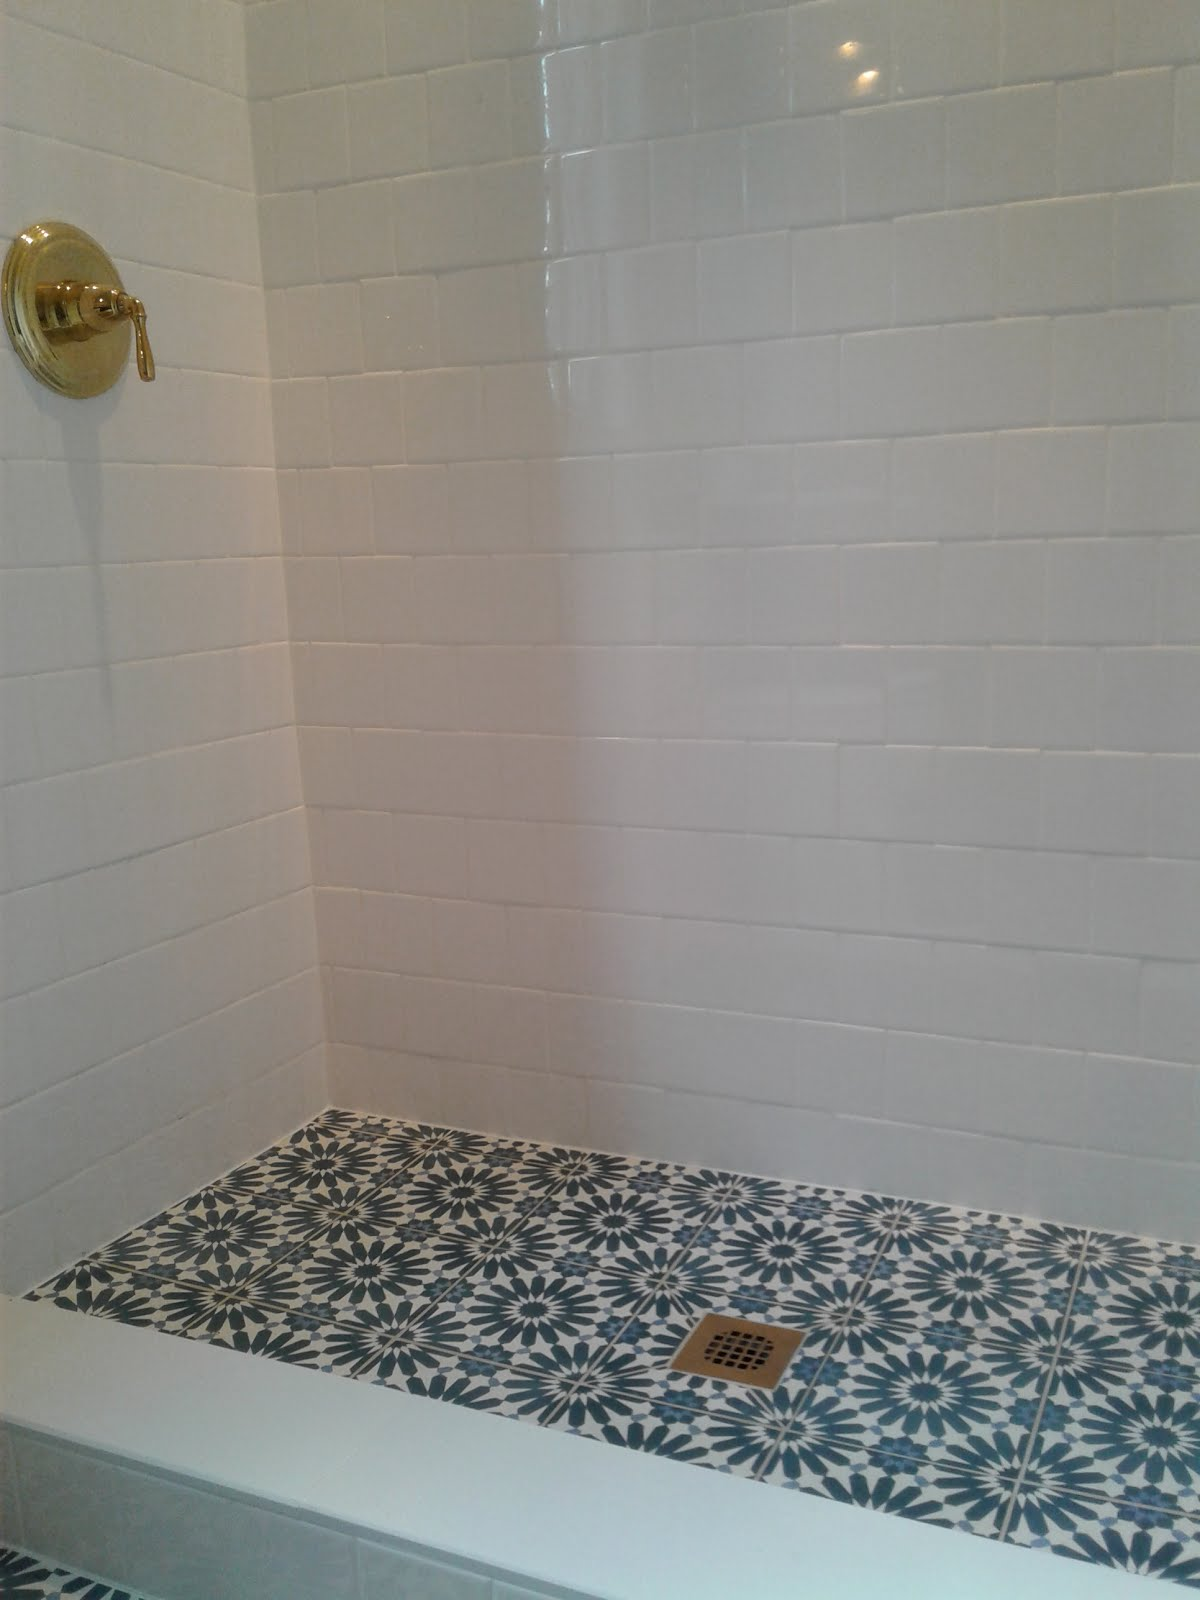 Our tile work passuluna concrete ceramic tile instal dailygadgetfo Choice Image